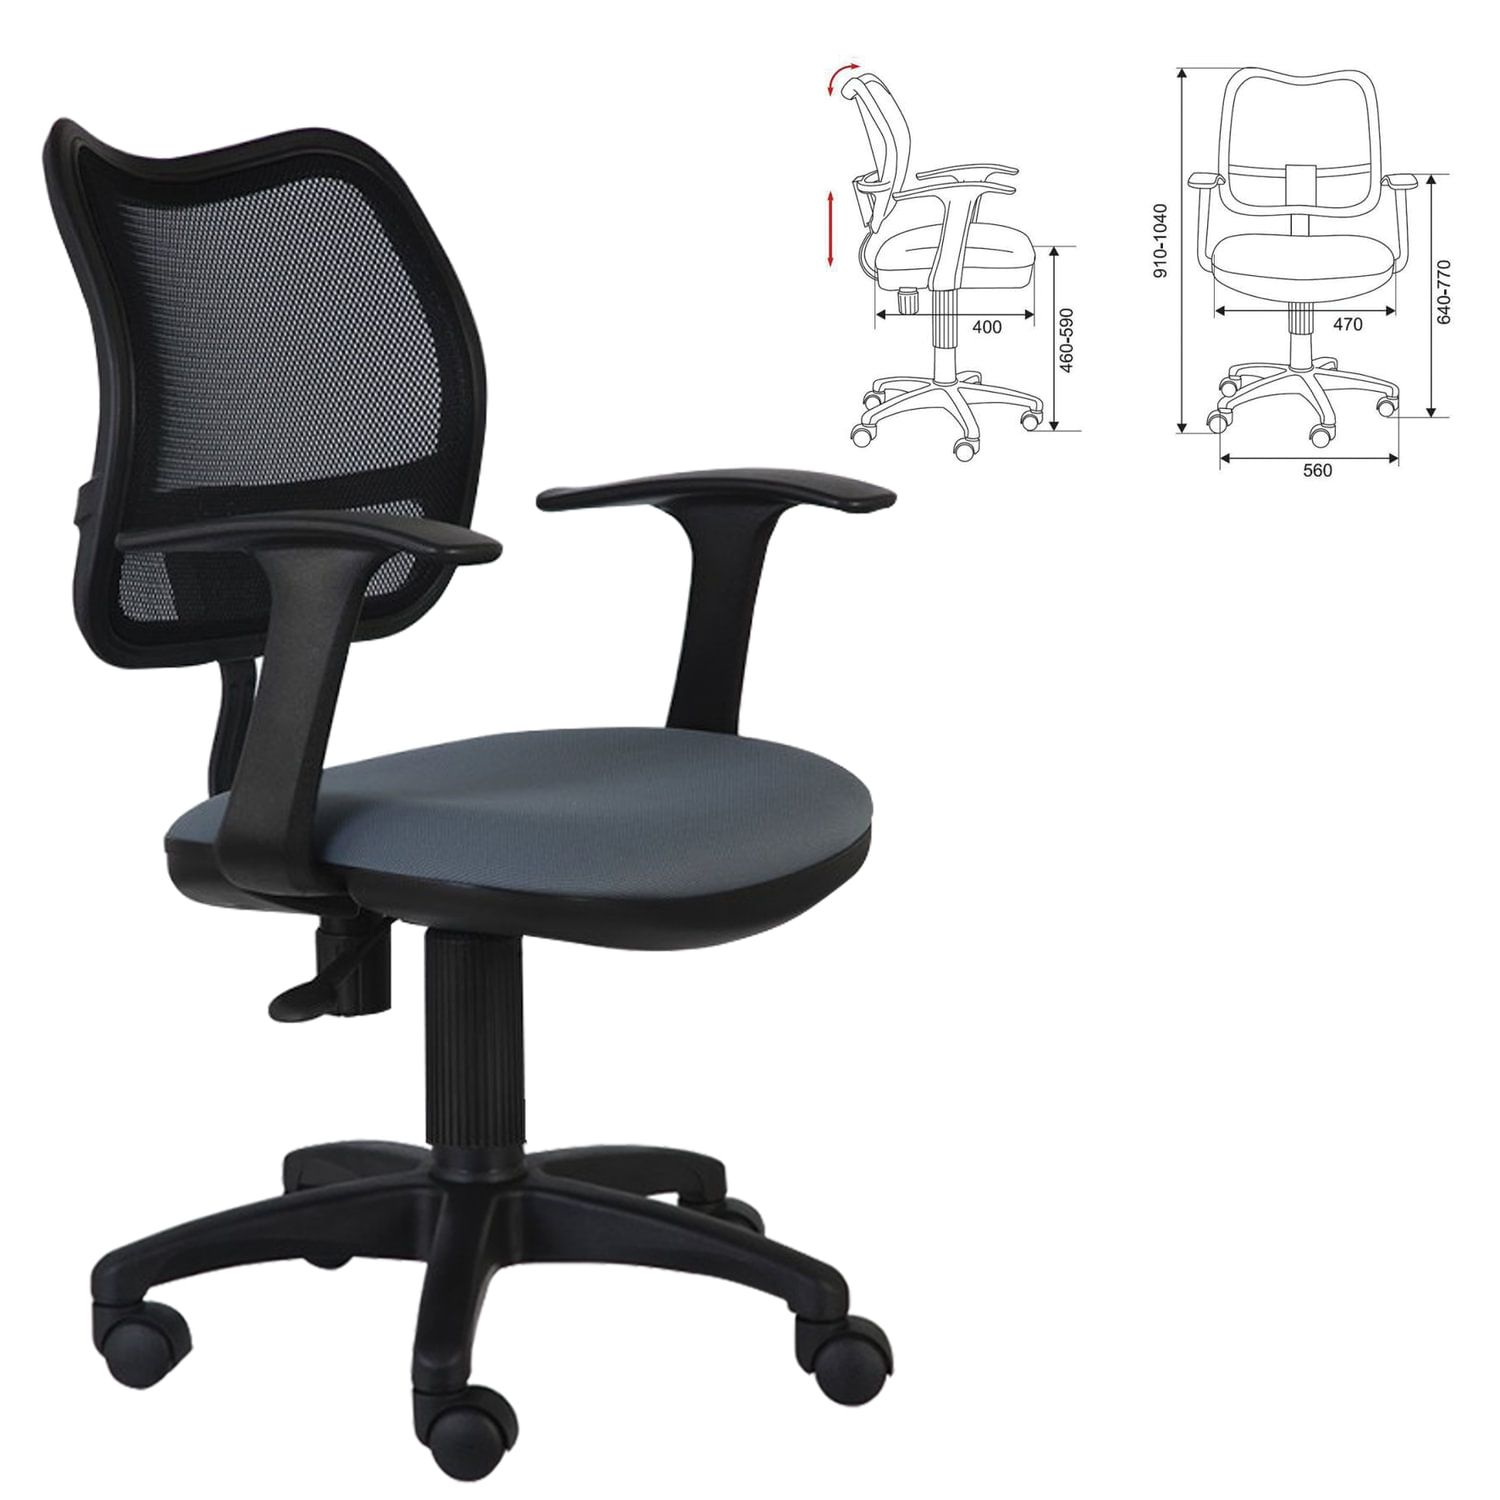 Armchair CH-797AXSN, with armrests, combined black-gray